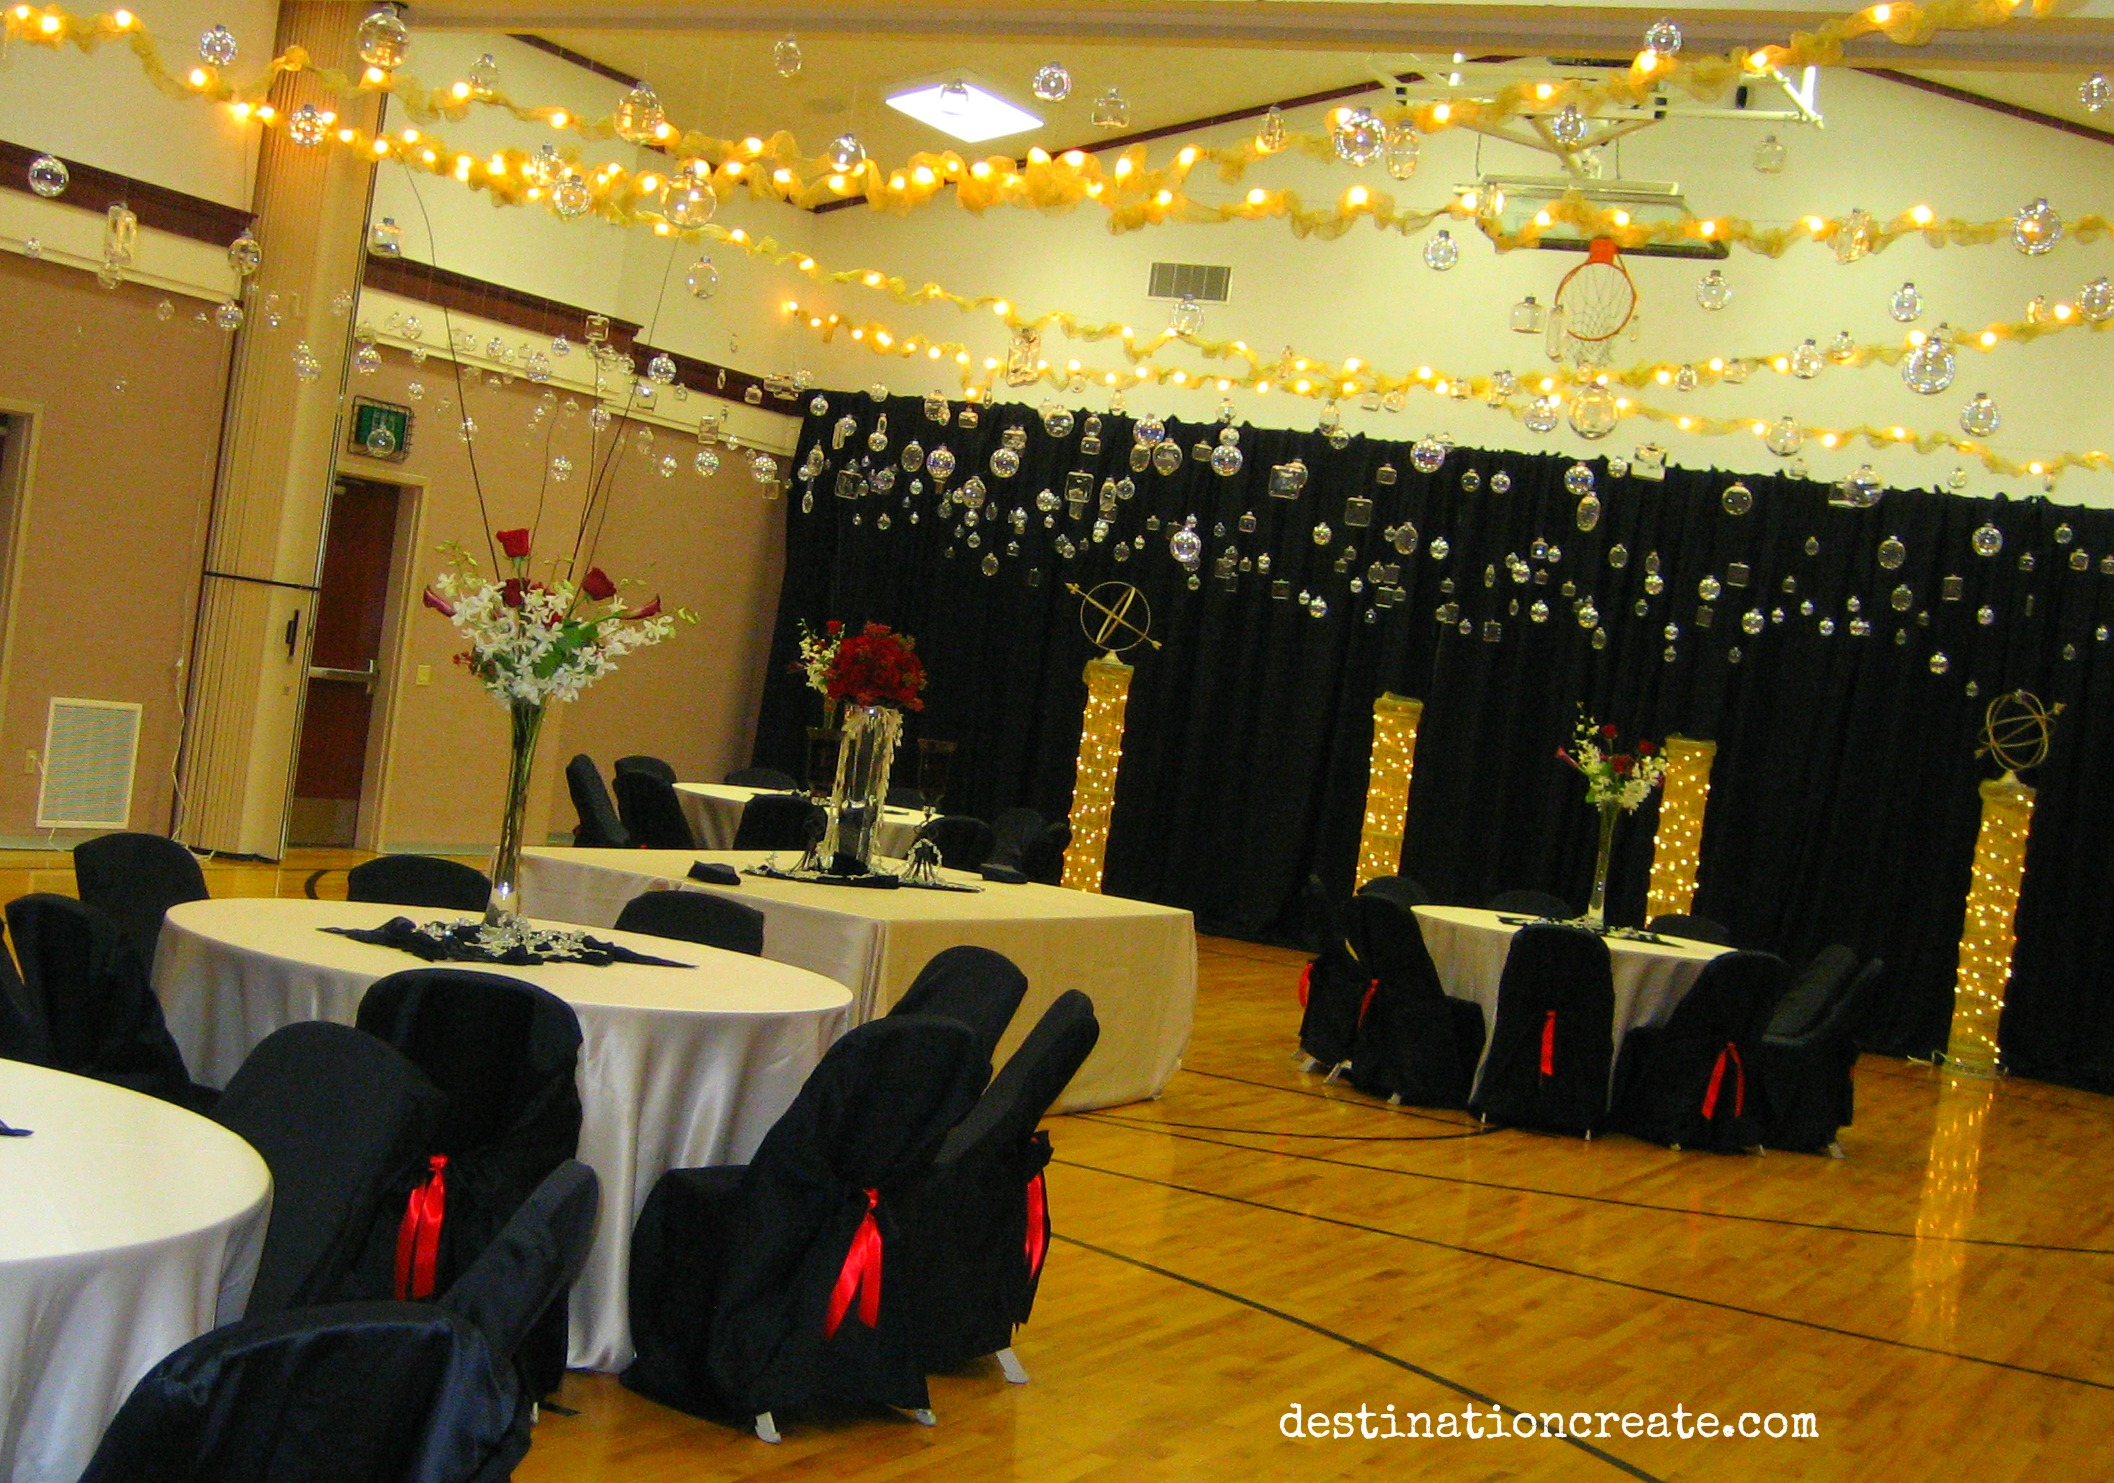 LDS cultural hall decorating Denver: Destination Create specializes in LDS wedding reception decorating, styling, planning & specialty rentals.